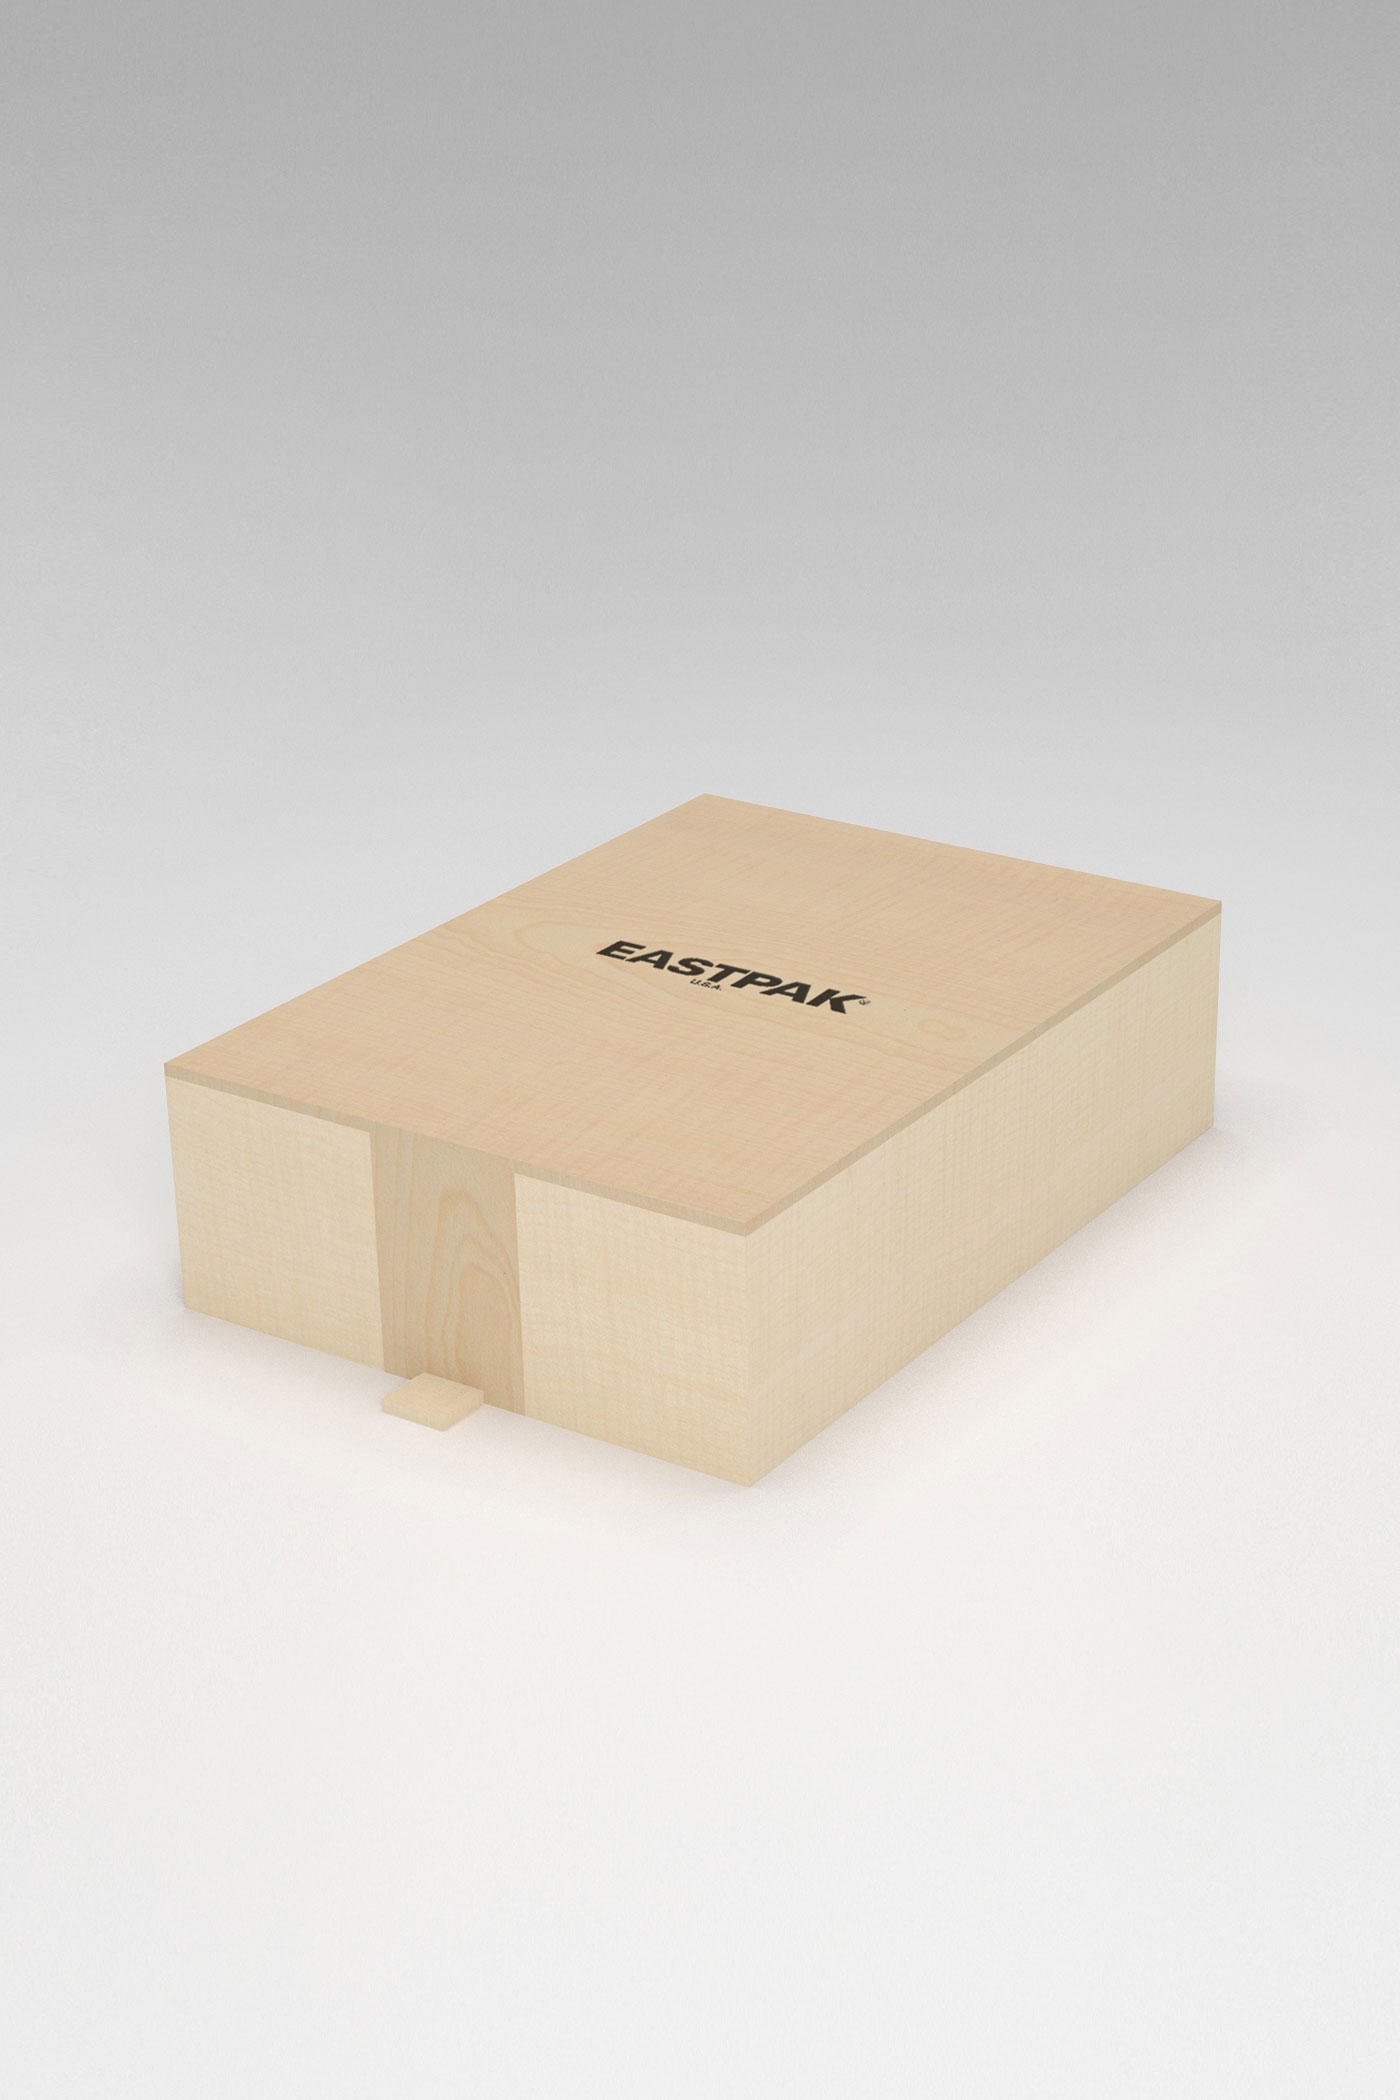 img7_kuroki_packaging_for_japan_project_eastpak_fq